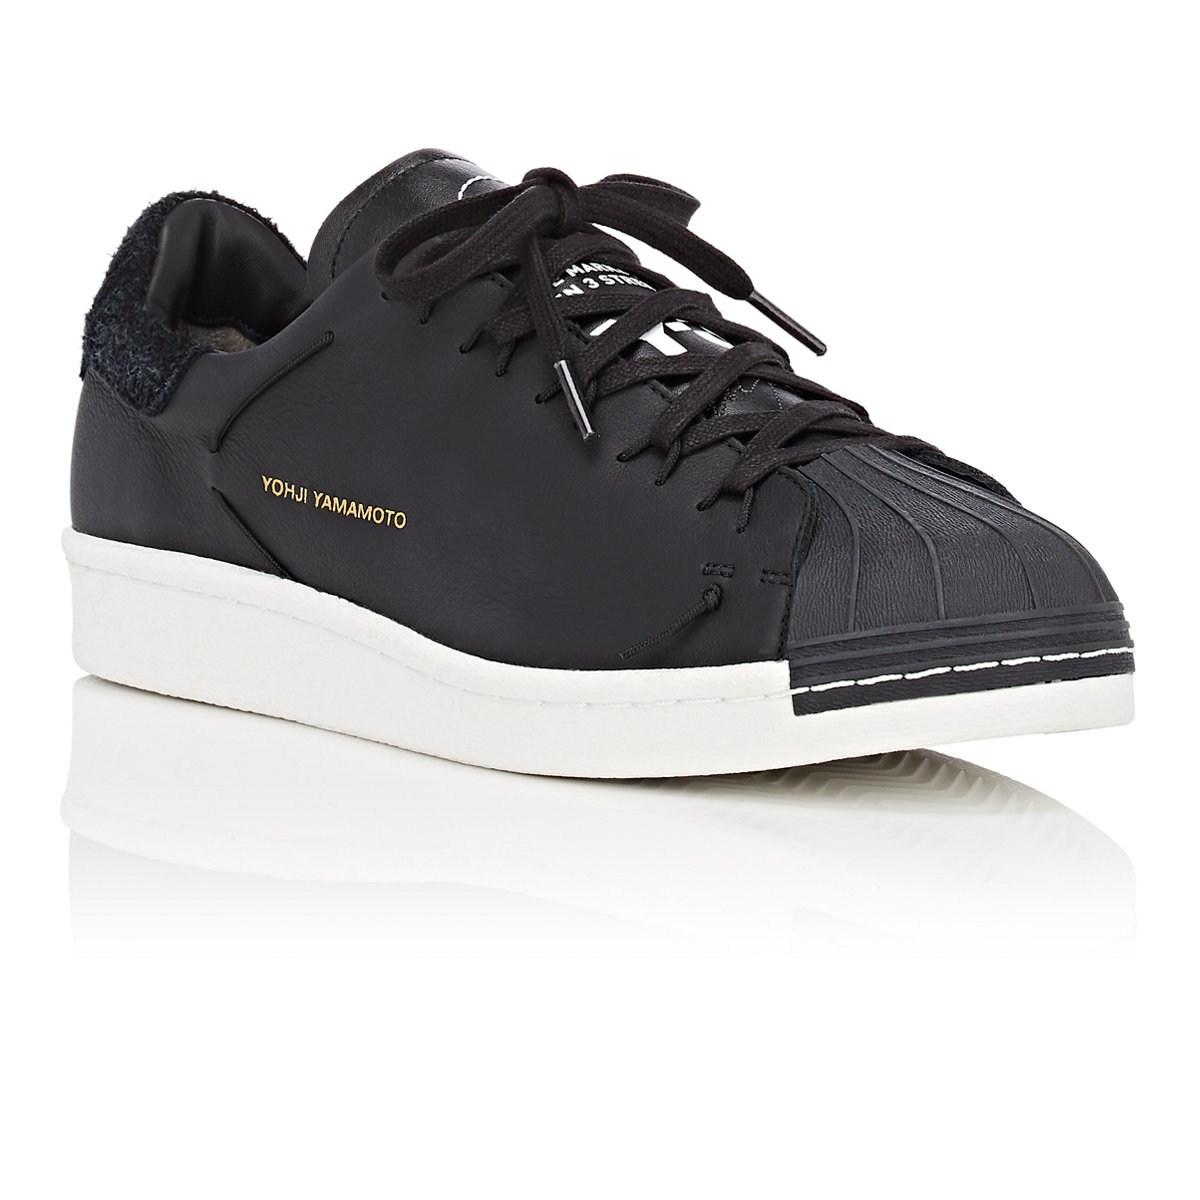 bfb7ff42f Y-3 - Black Super Knot Leather Sneakers for Men - Lyst. View fullscreen